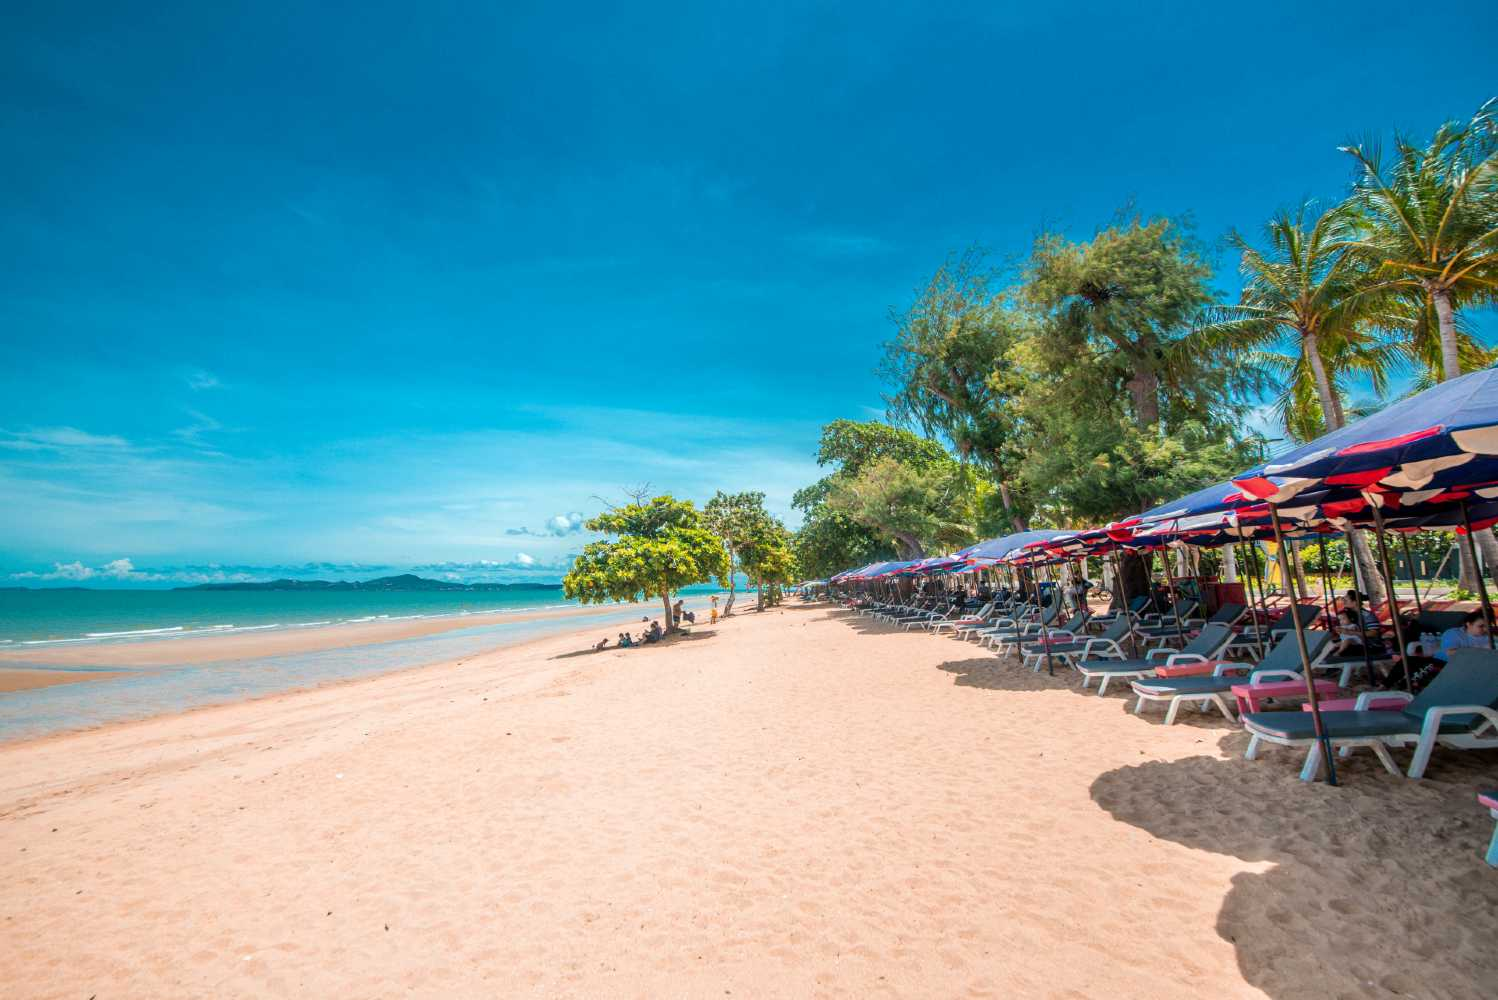 beach with beach beds on a sunny day in Pattaya